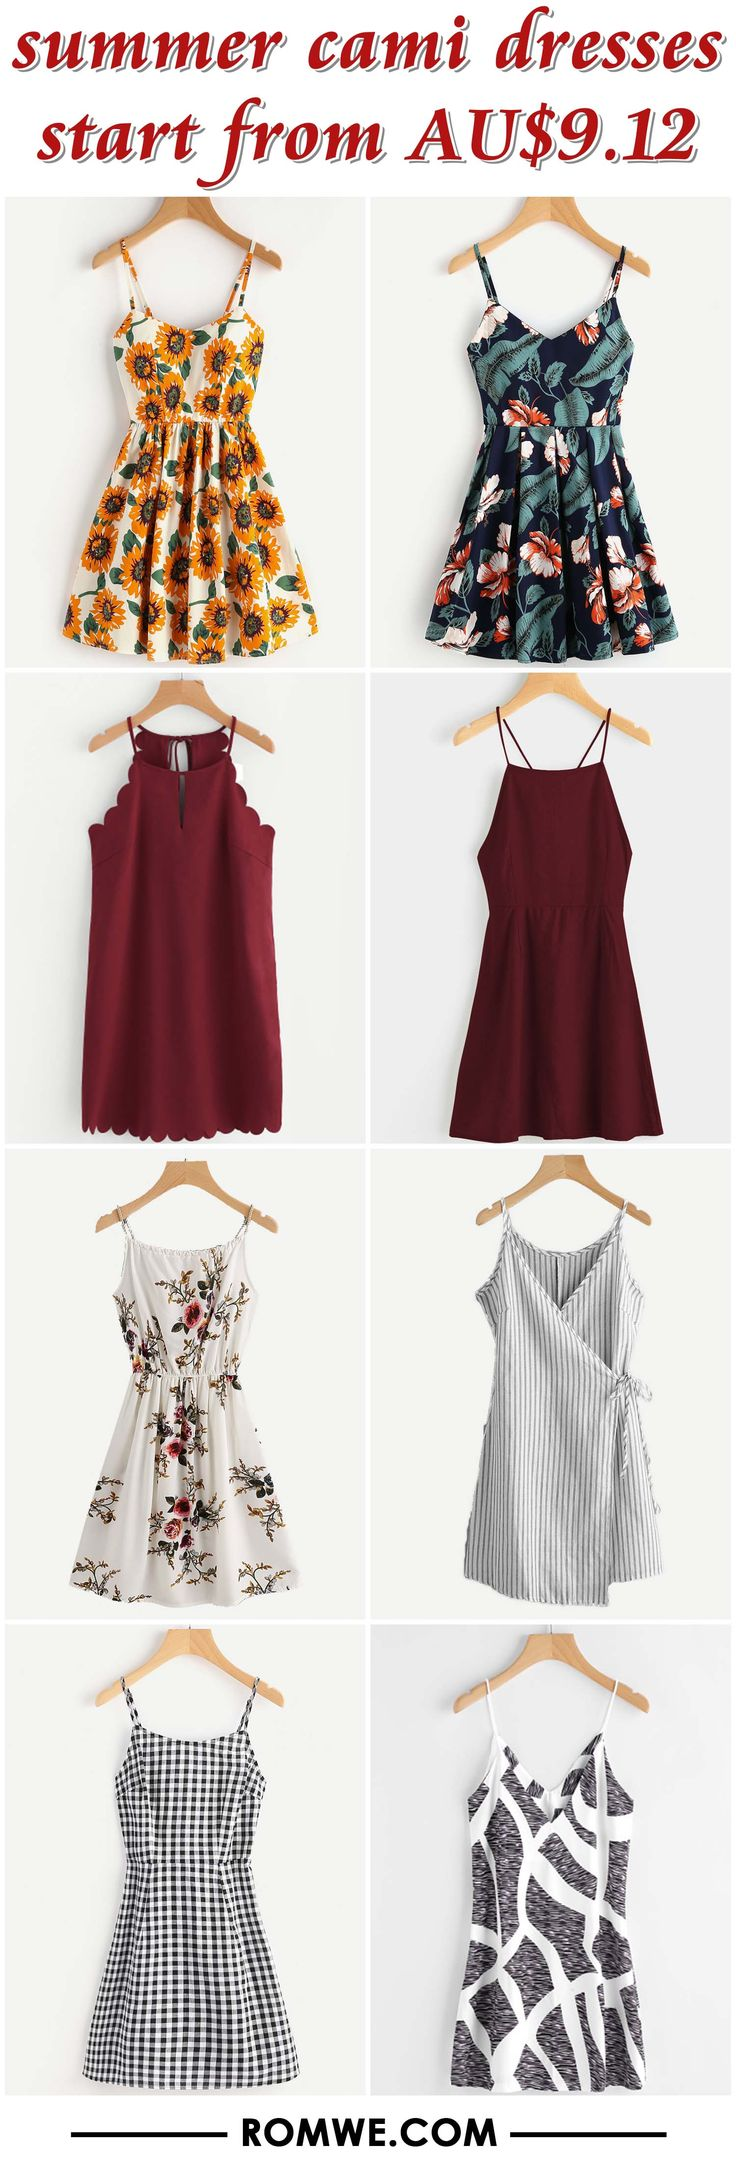 summer cami dresses from AU$9.12